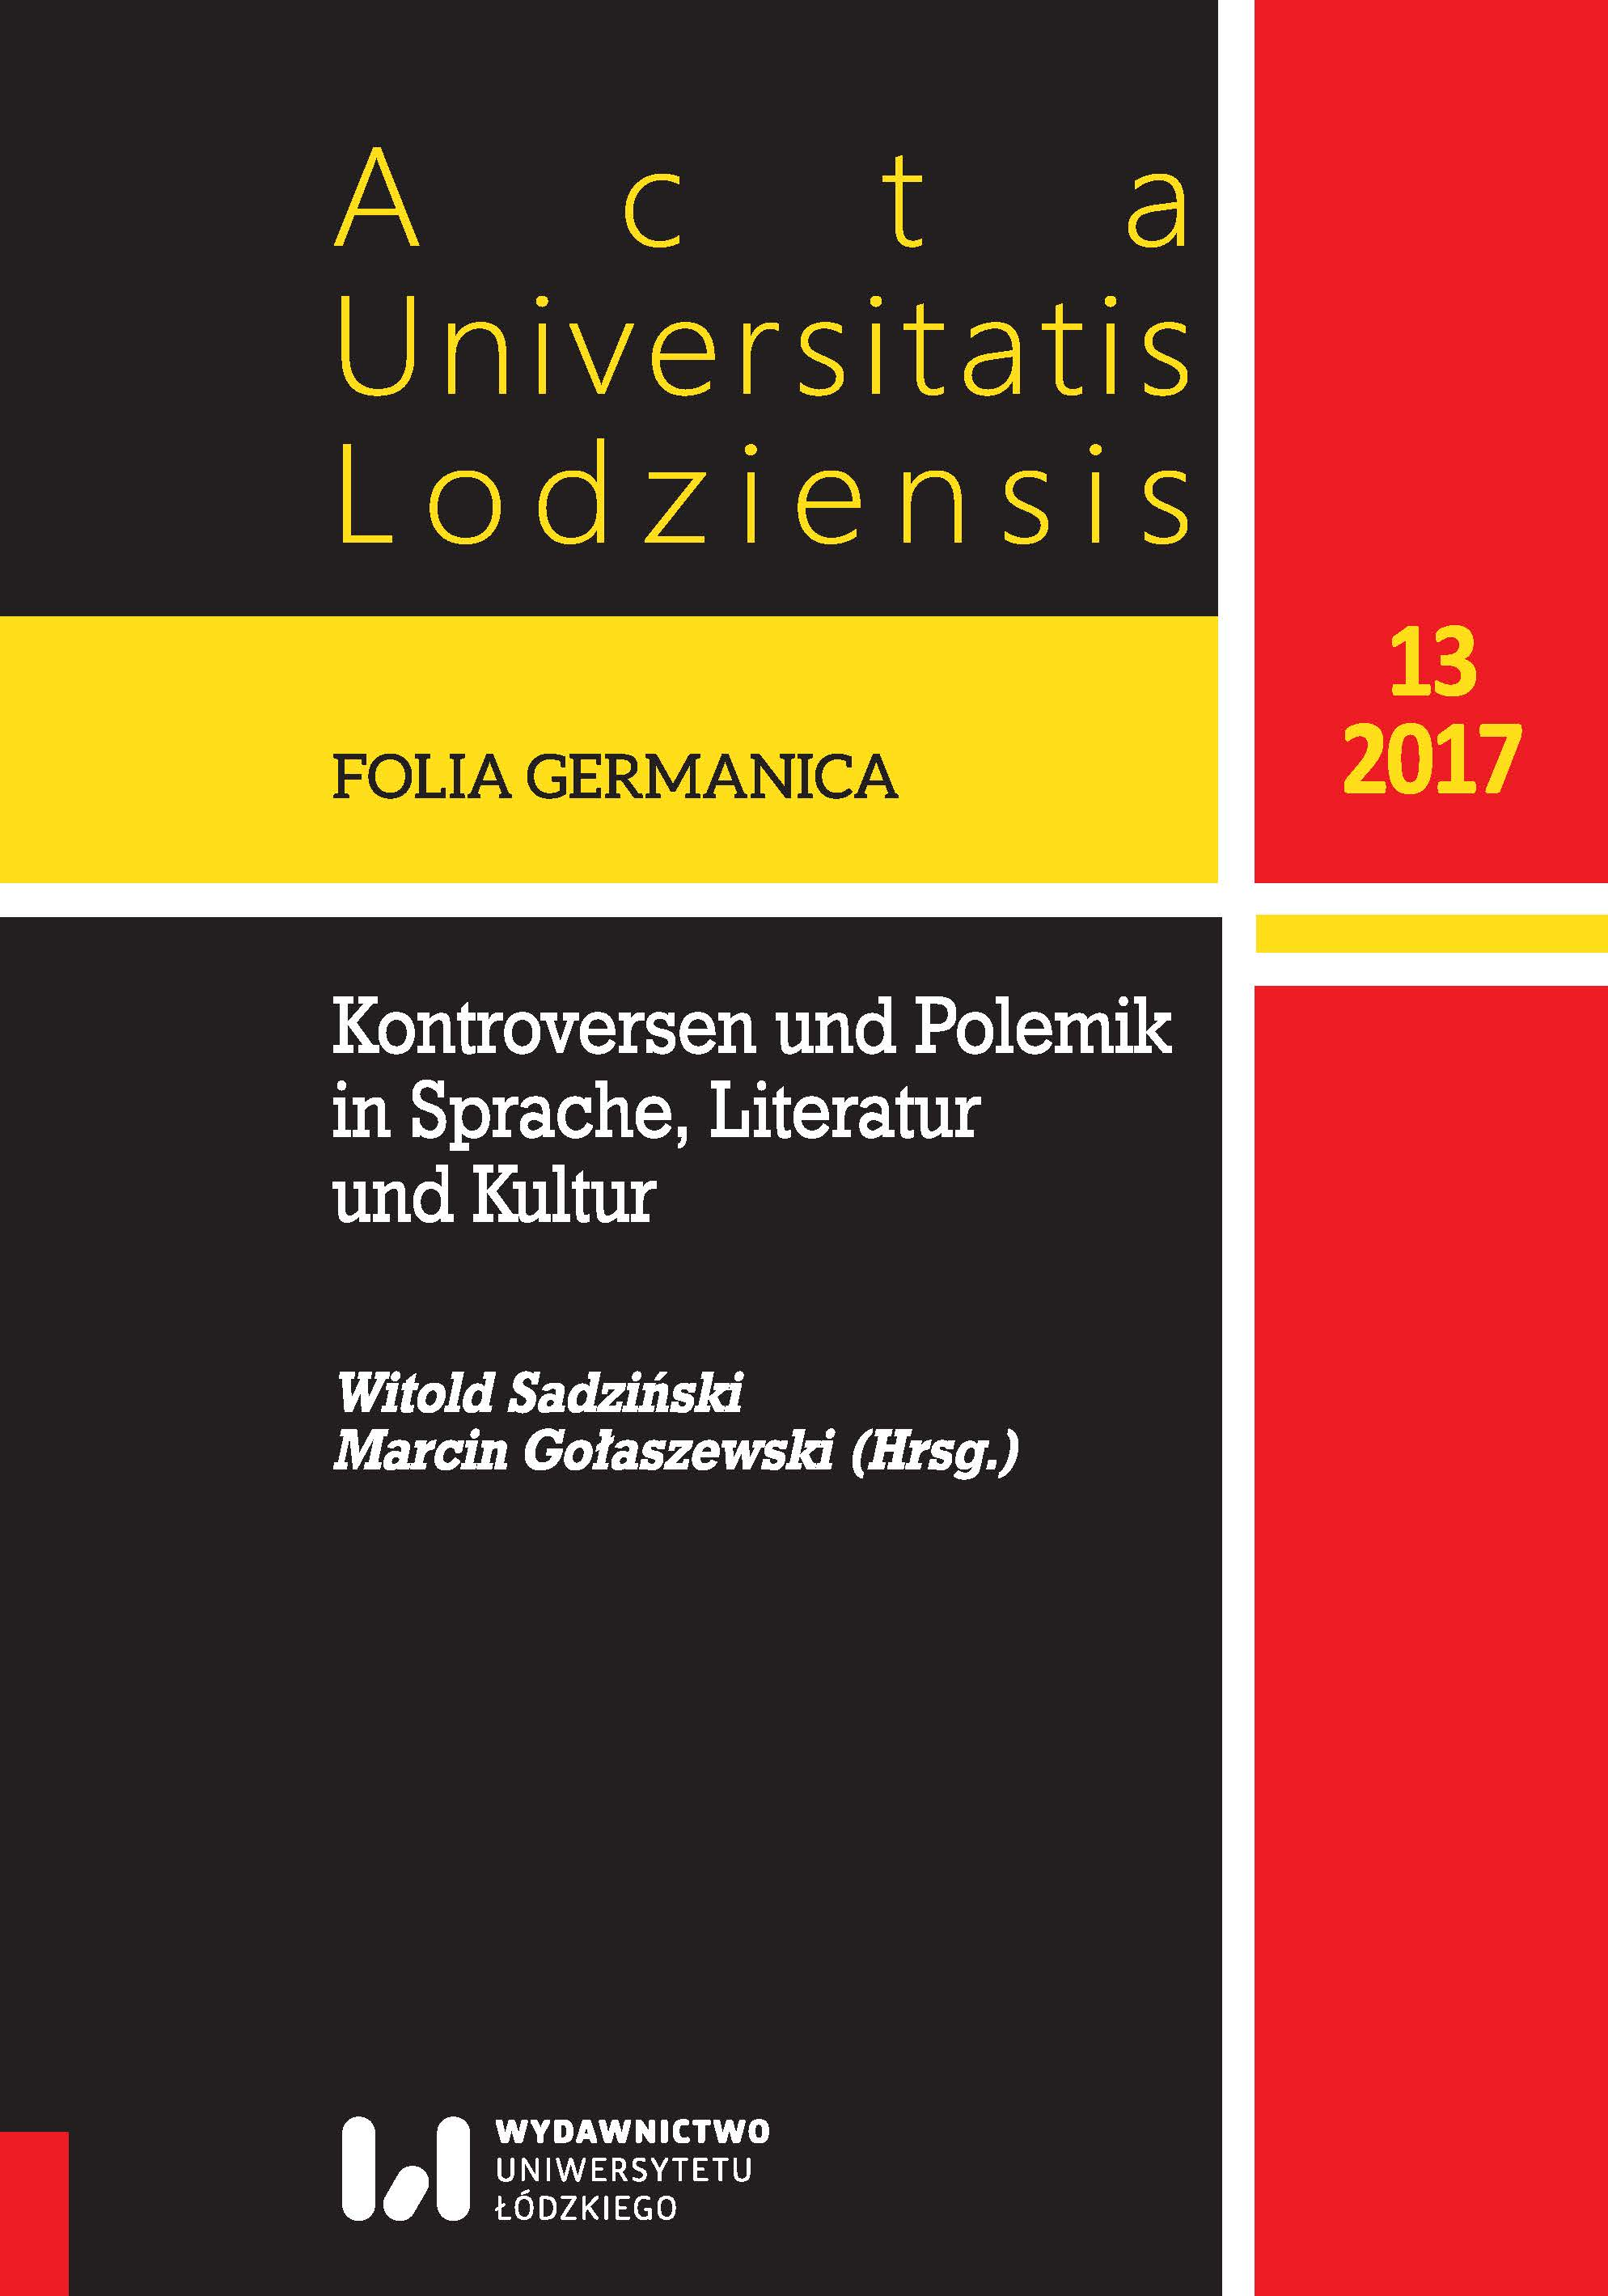 Acta Universitatis Lodziensis. Folia Germanica